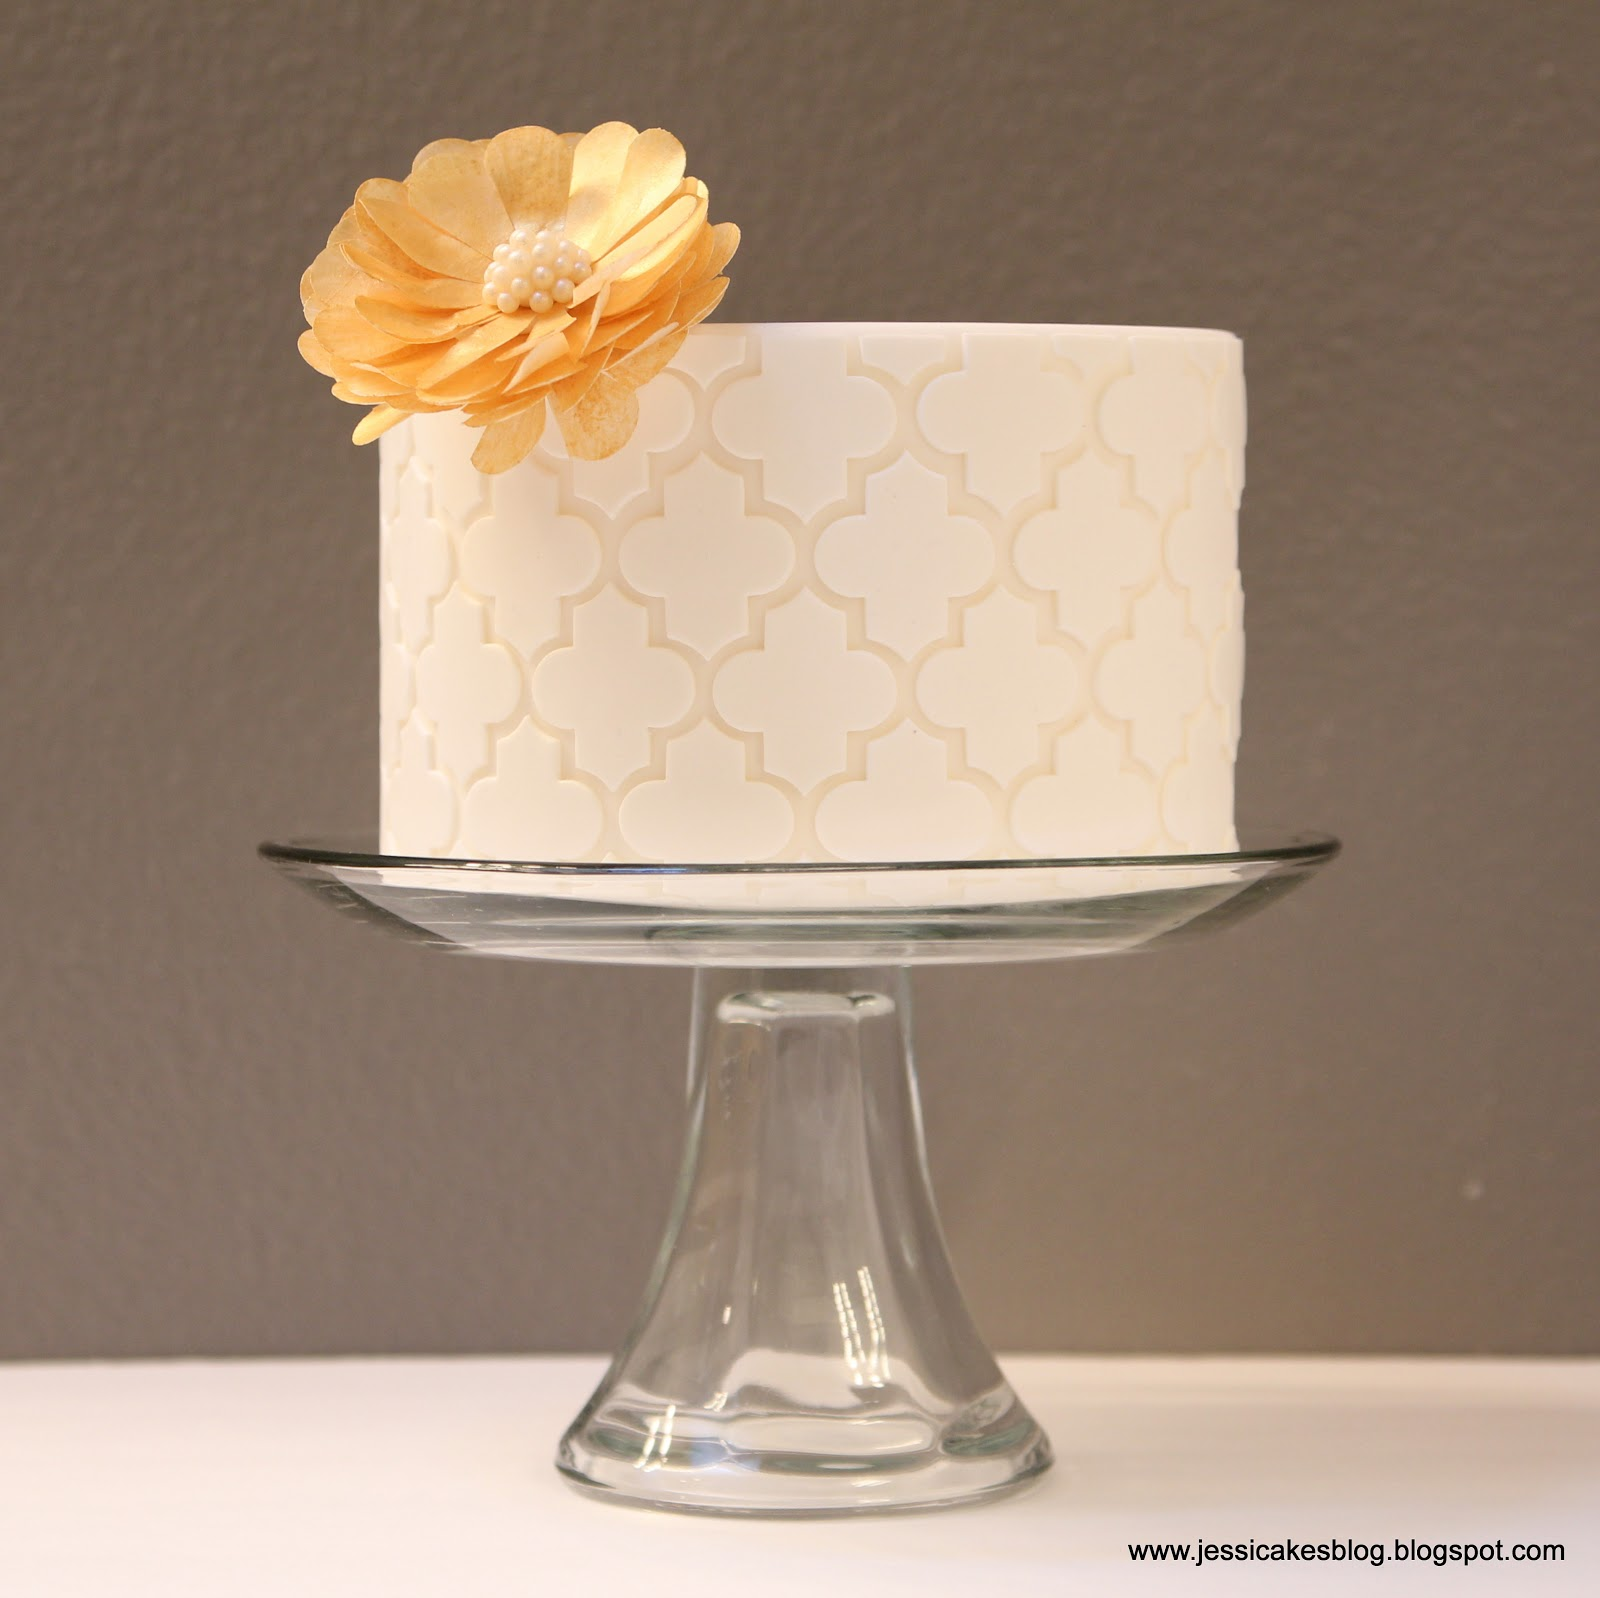 Cake Decorations Wafer Paper : Moroccan Cake + A Wafer Paper Flower Tutorial - Jessica ...